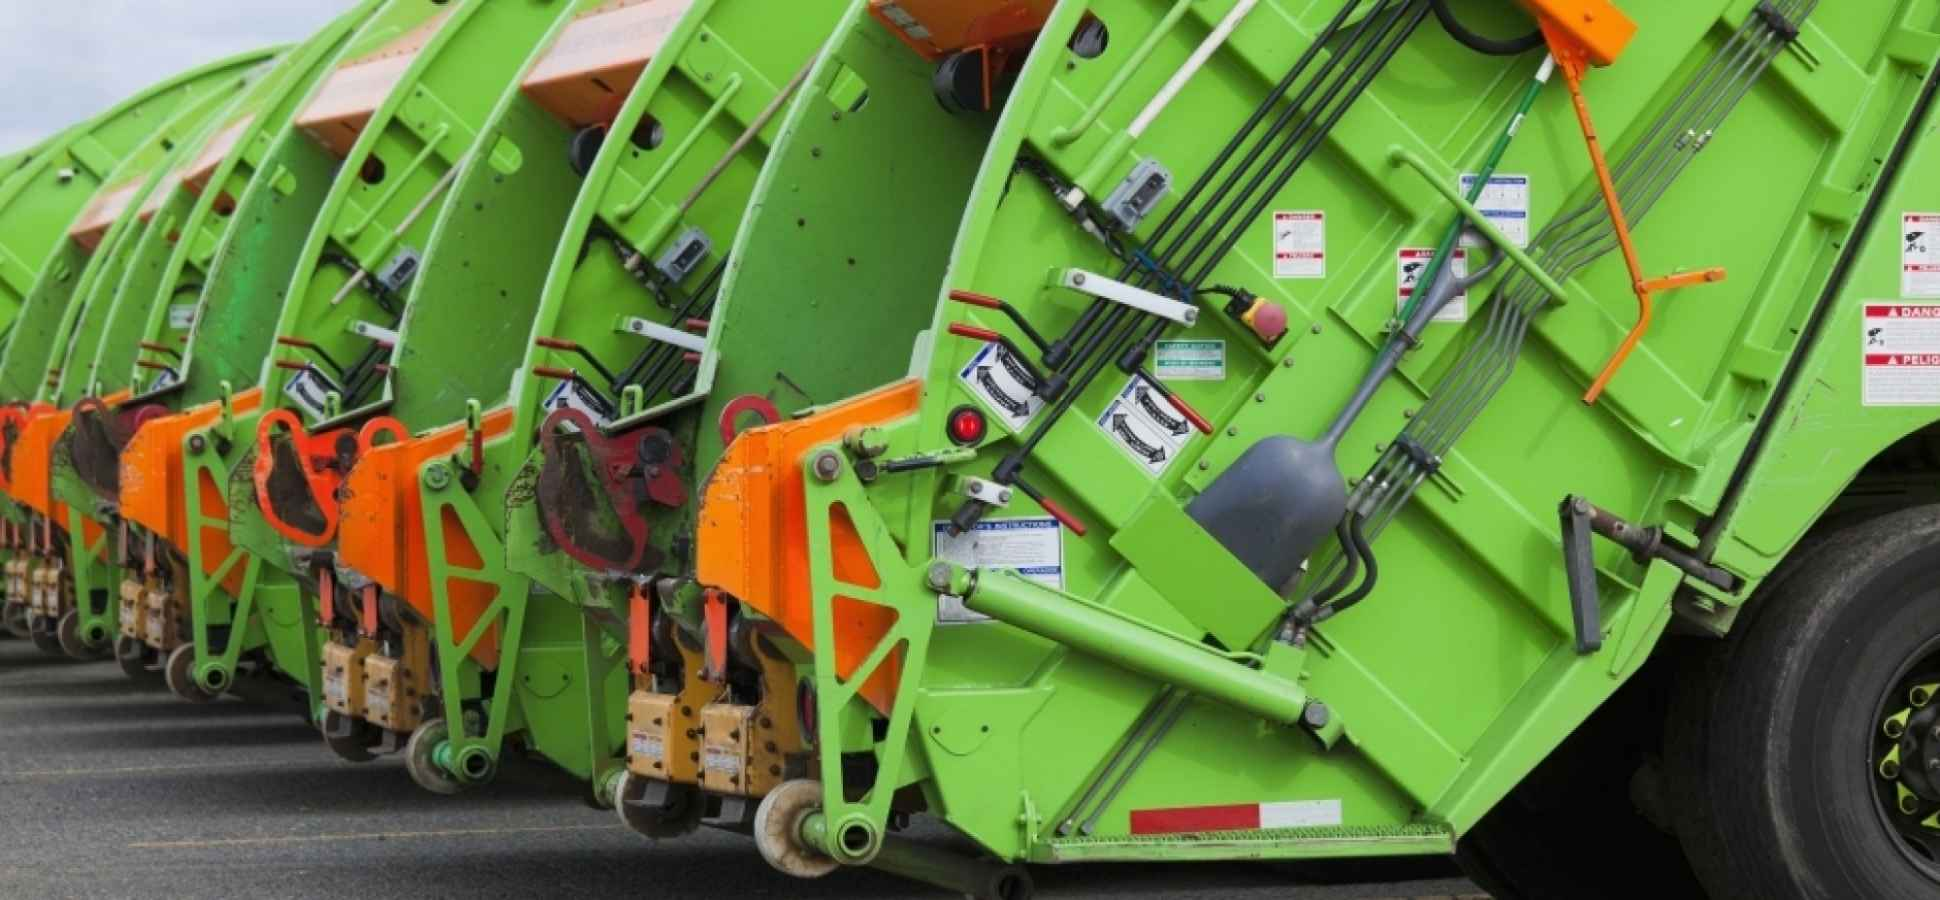 How To Claim A Piece Of The $100 Billion Waste Management Opportunity